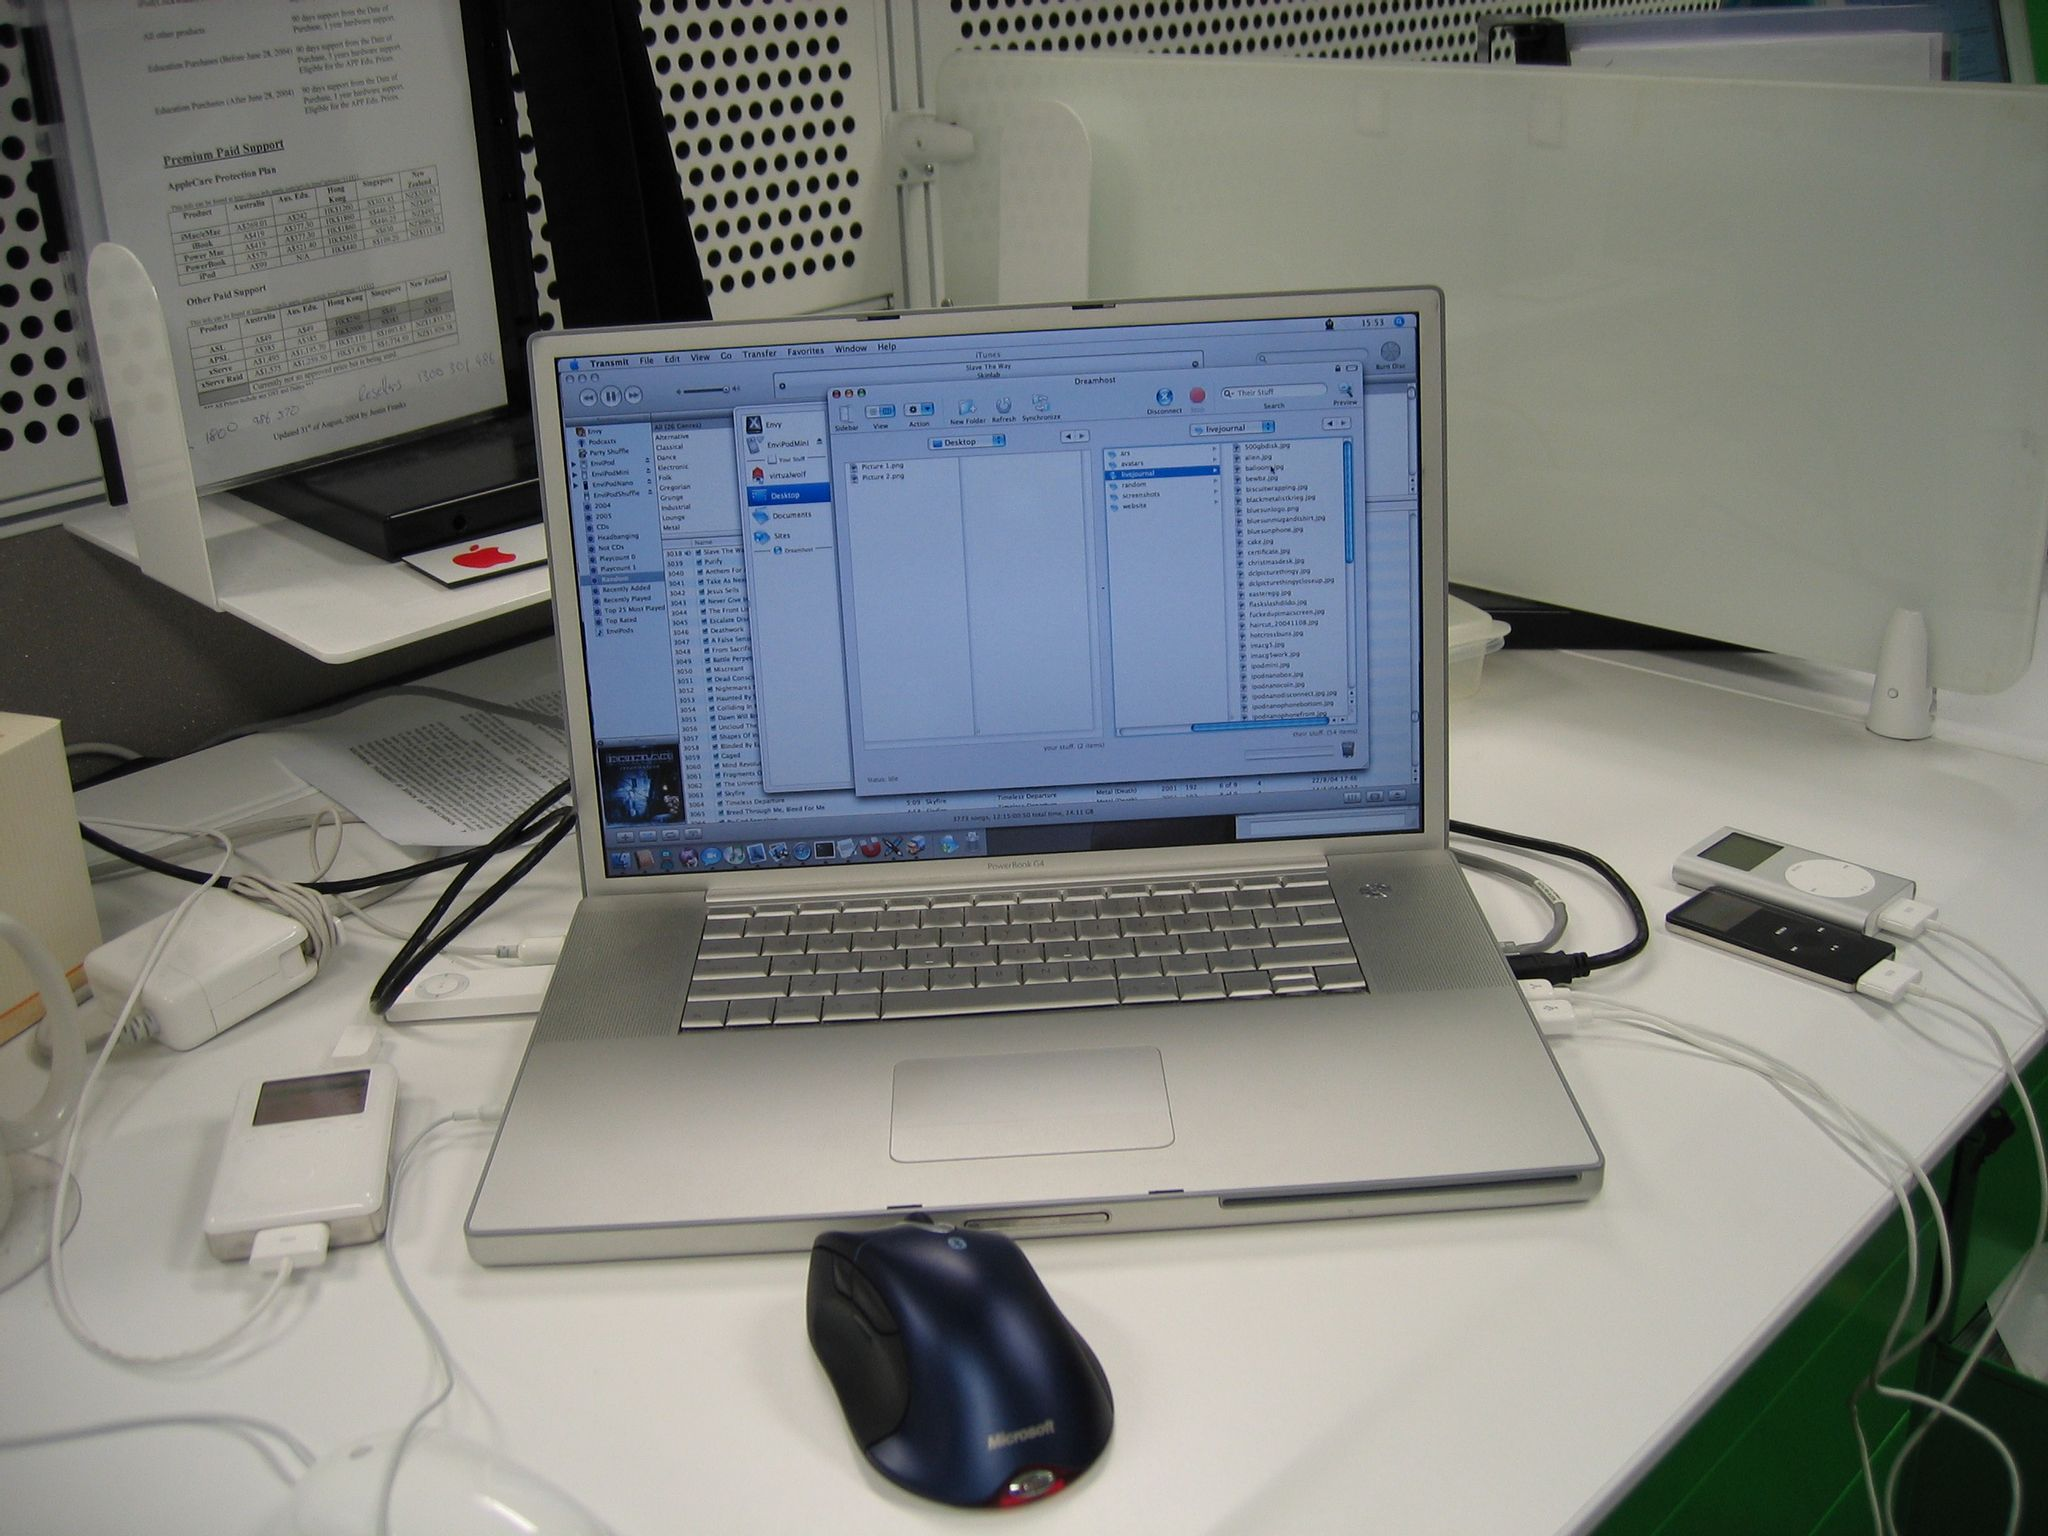 A photo of a PowerBook G4 with four iPods (a regular iPod, an iPod mini, an iPod nano, and an iPod shuffle) connected via USB to all four of its available USB ports.